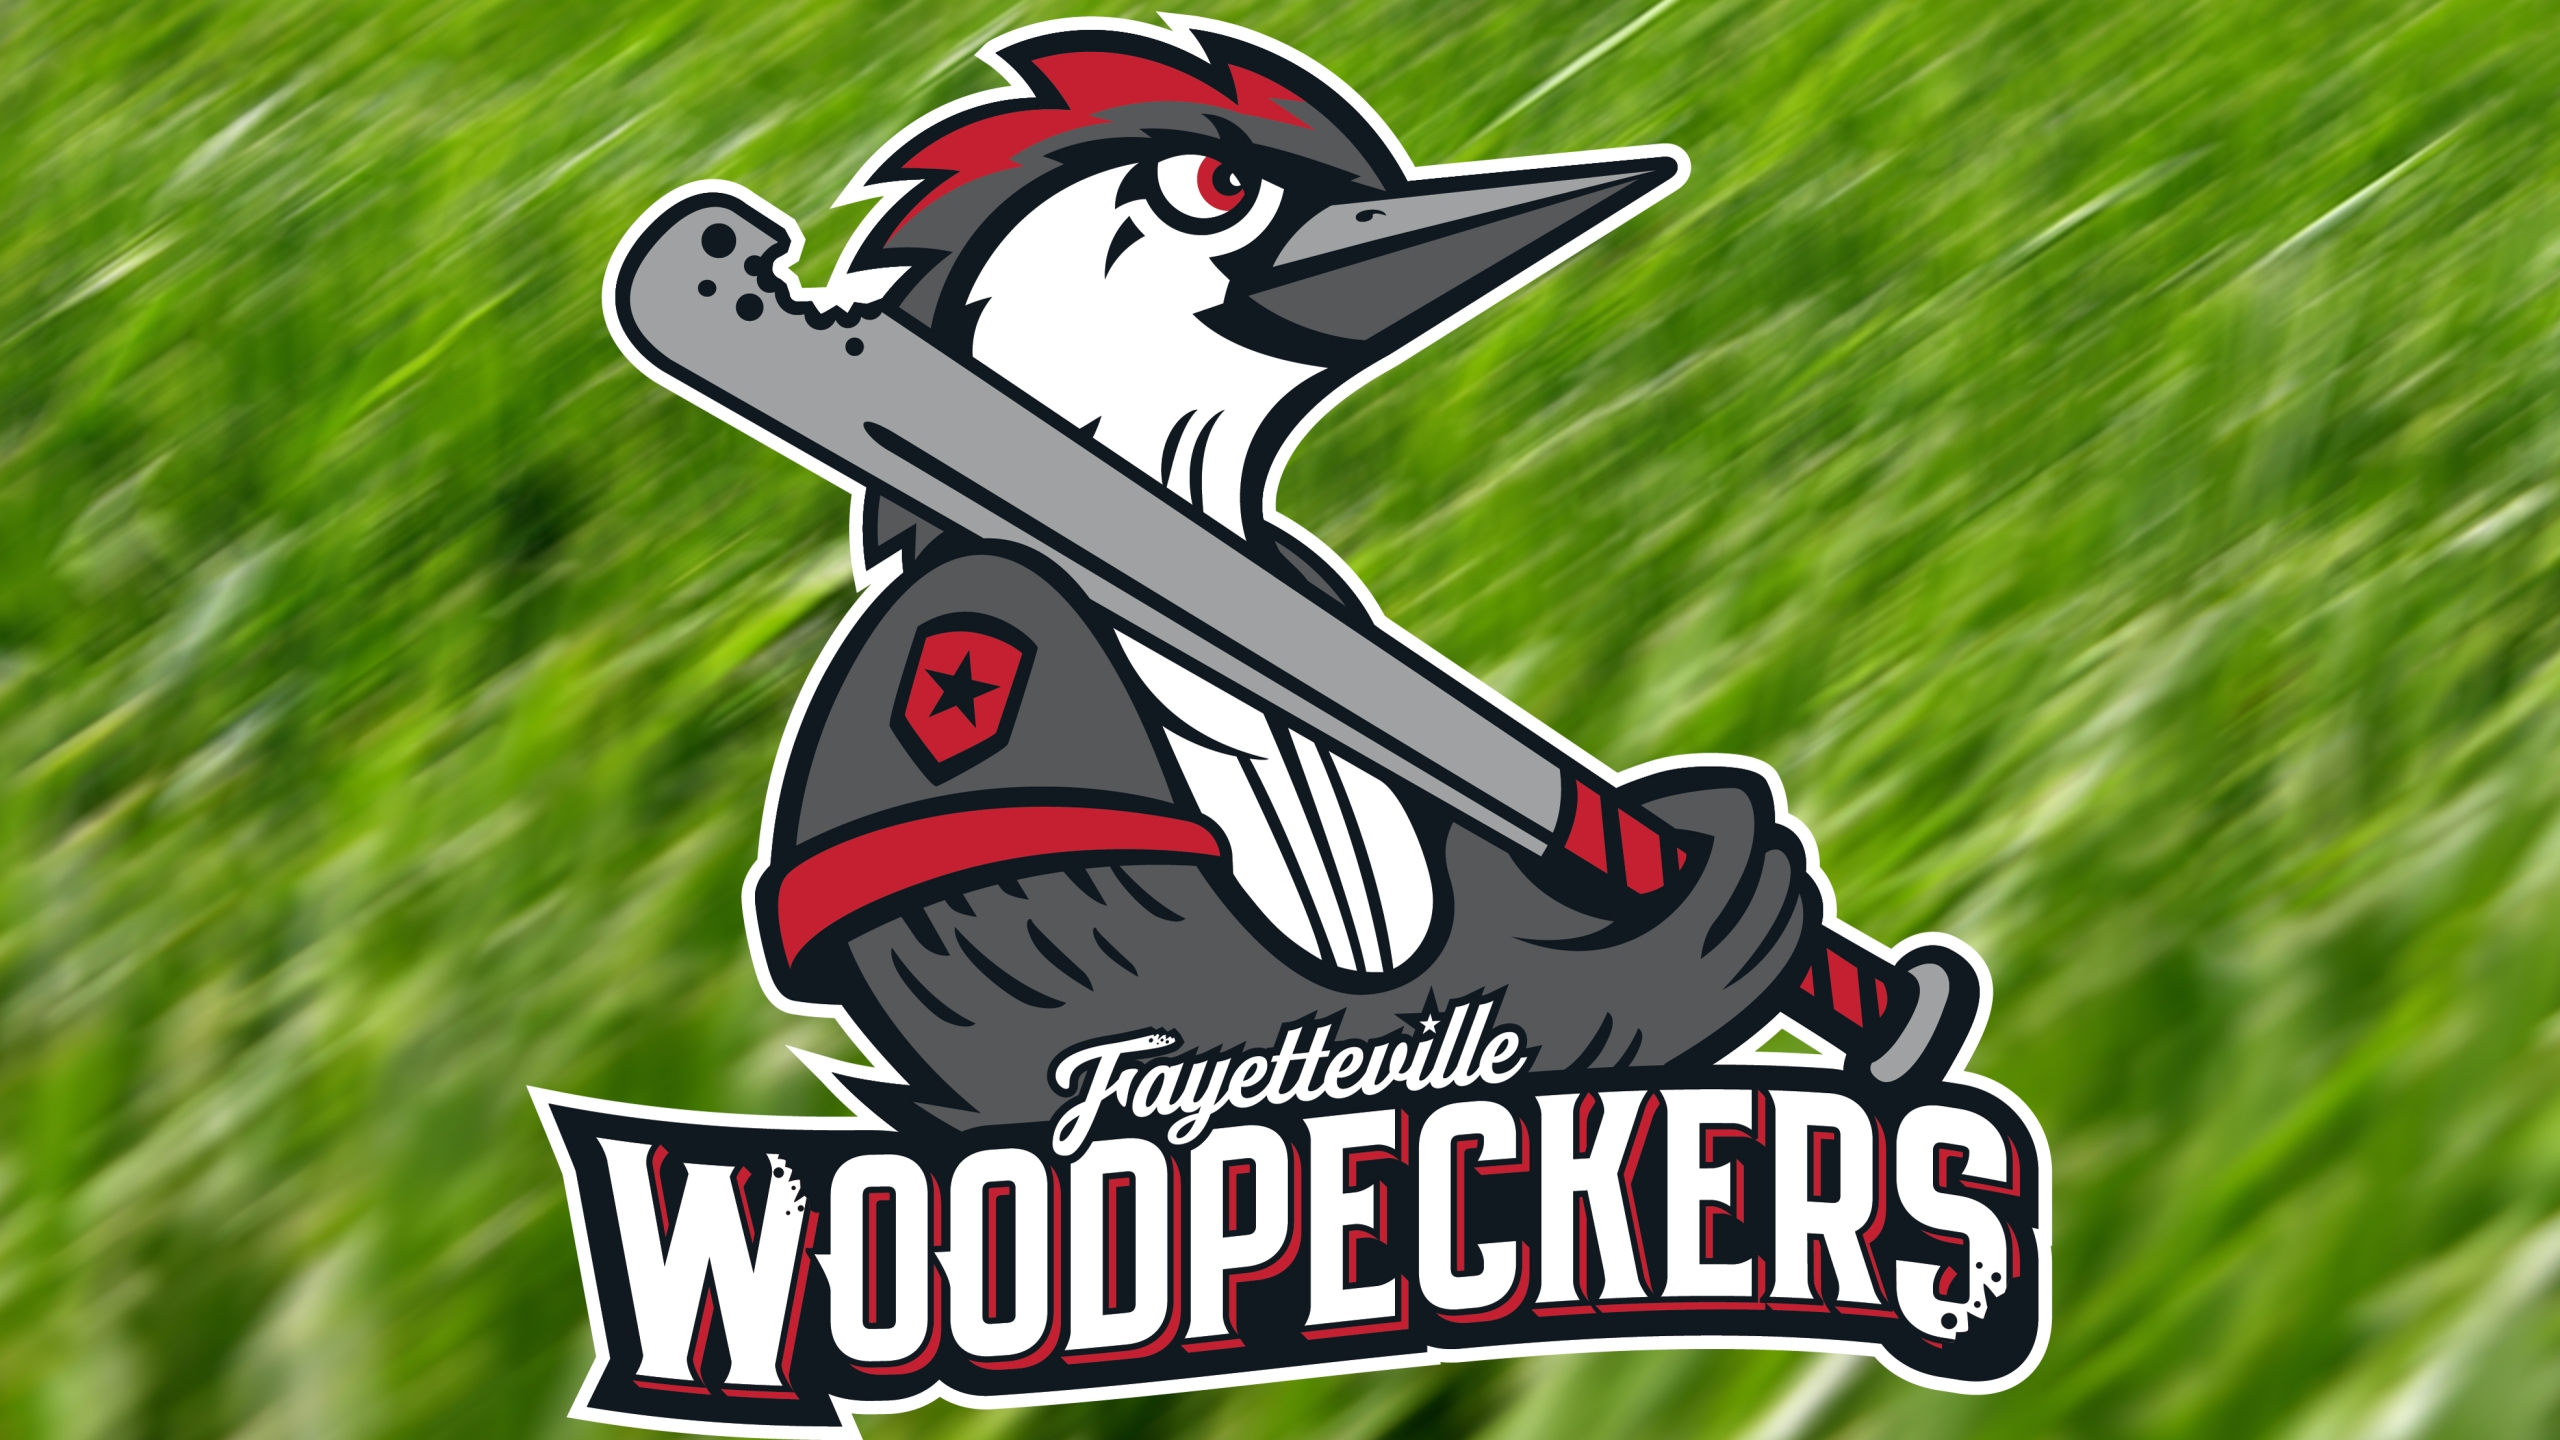 Woodpeckers generic